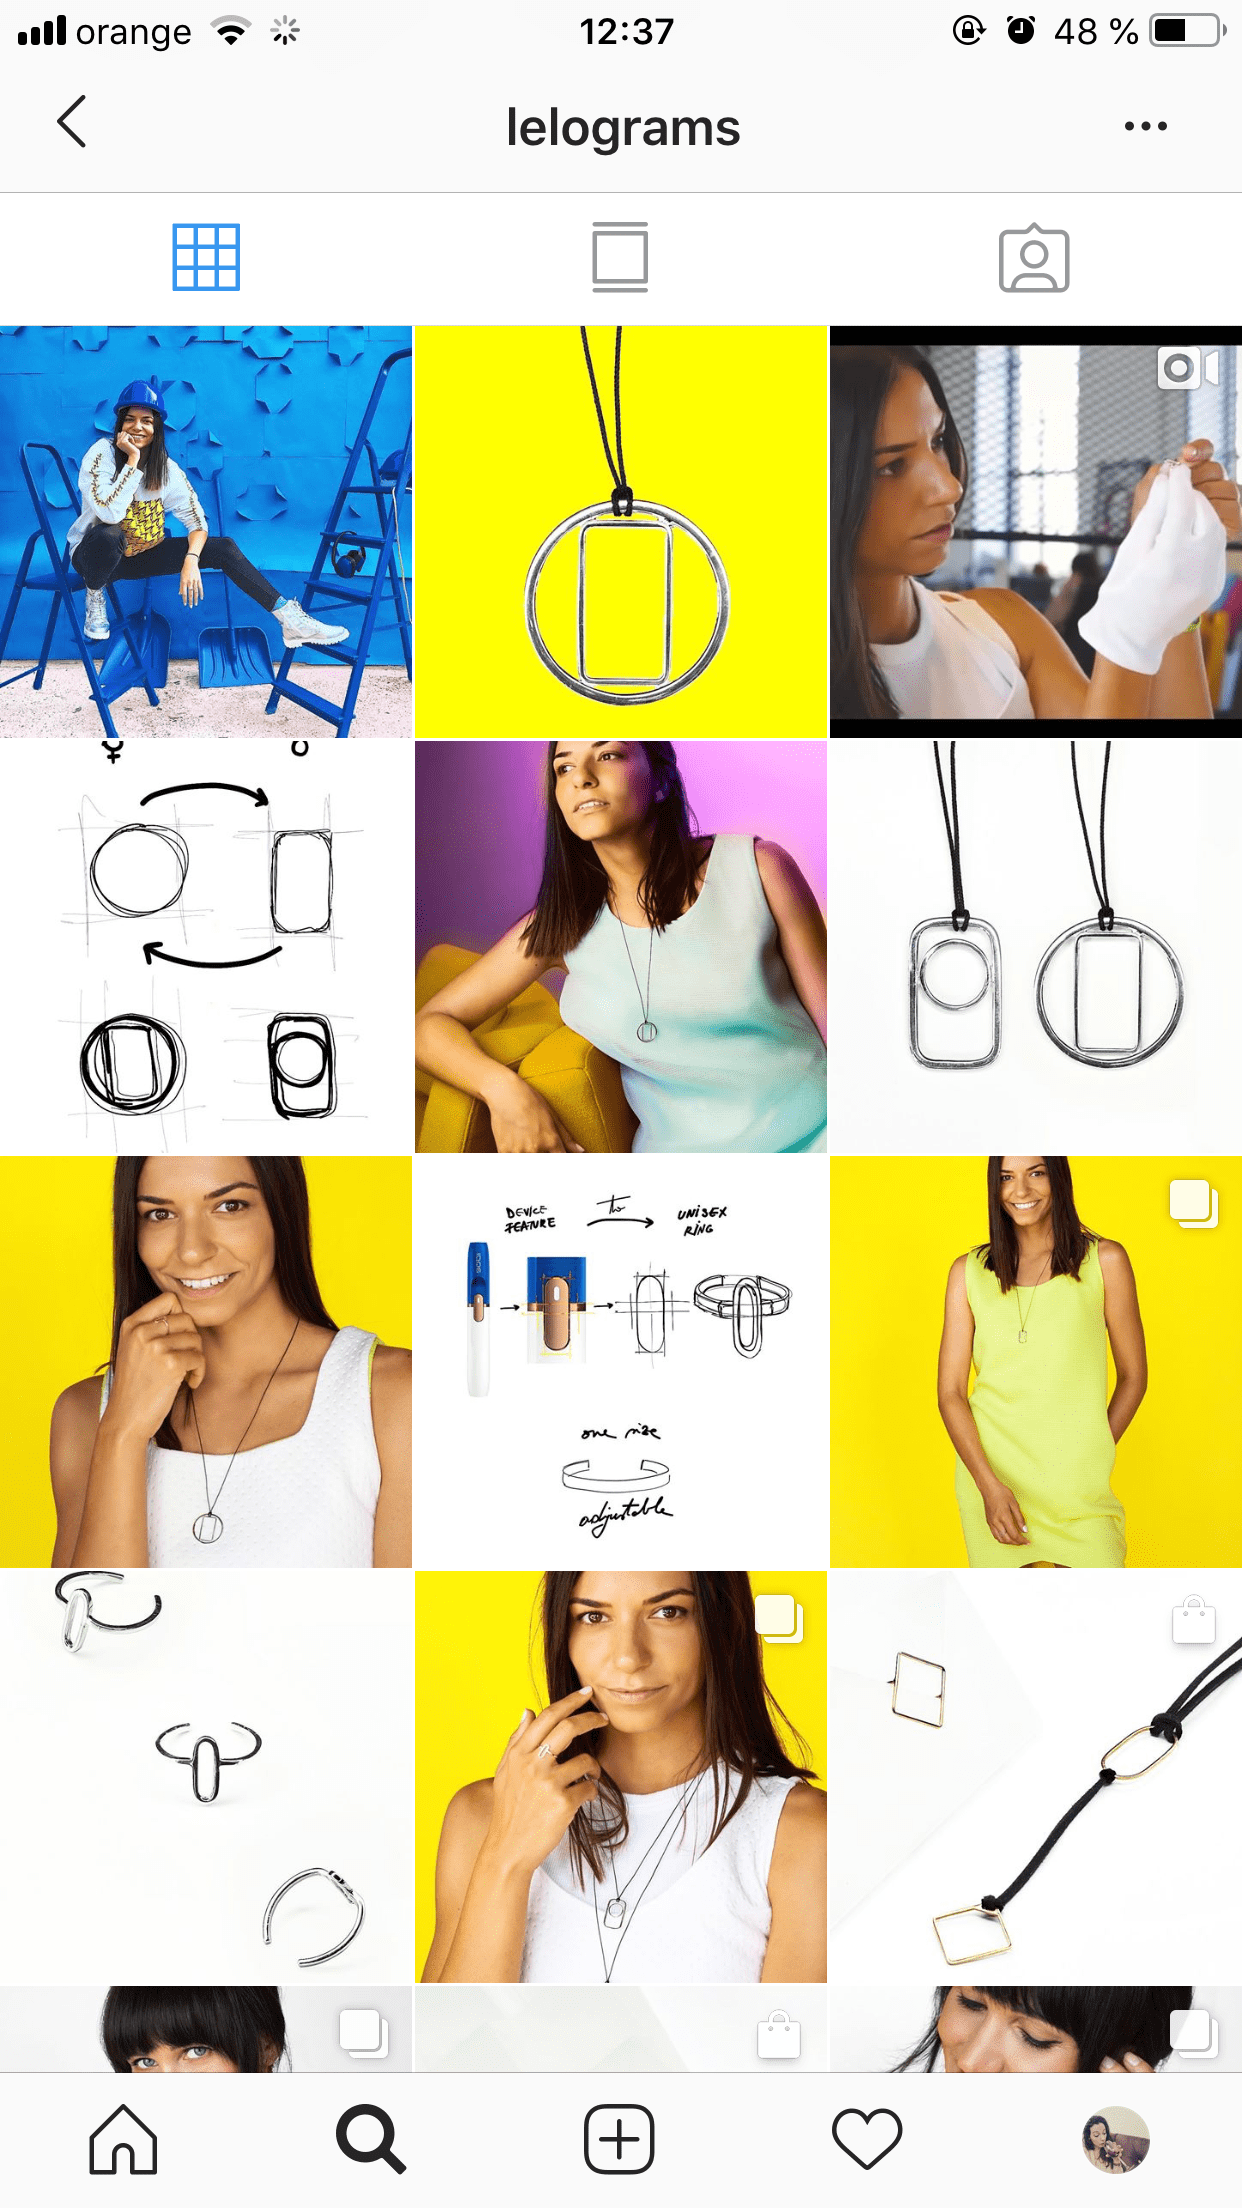 instagram grid view example lelograms - how to get 10000 followers for instagram